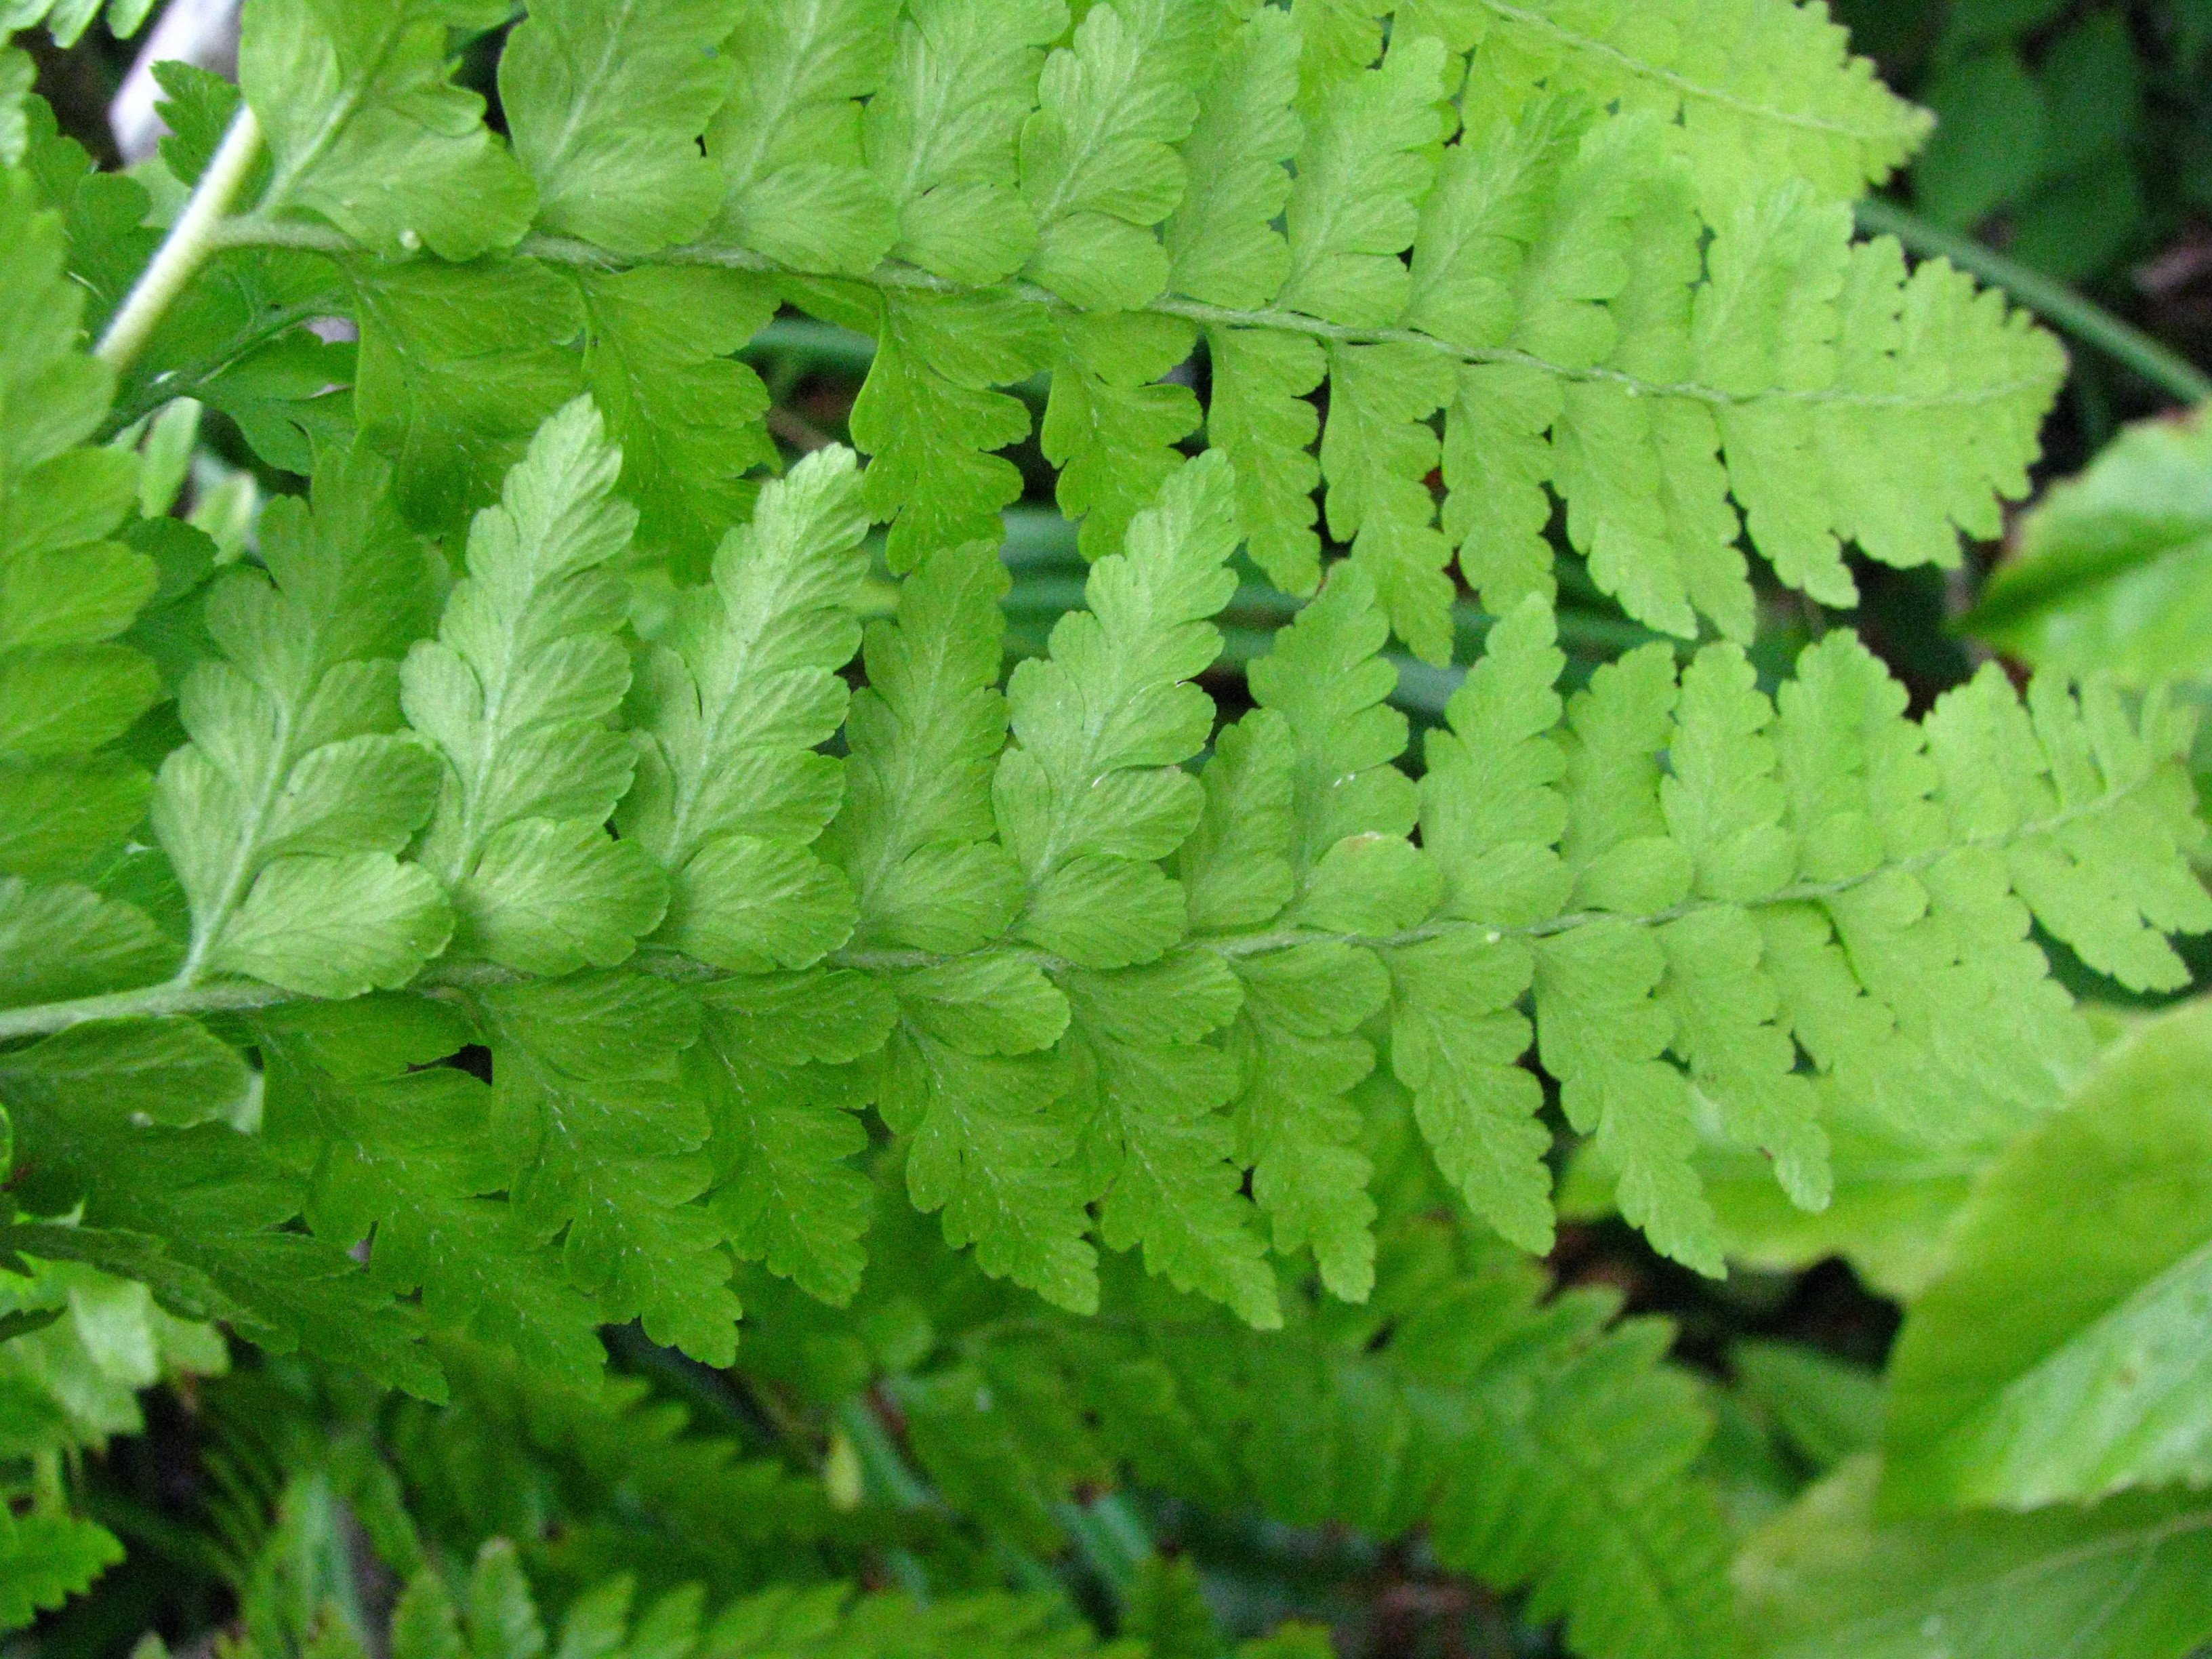 Image of limpleaf fern